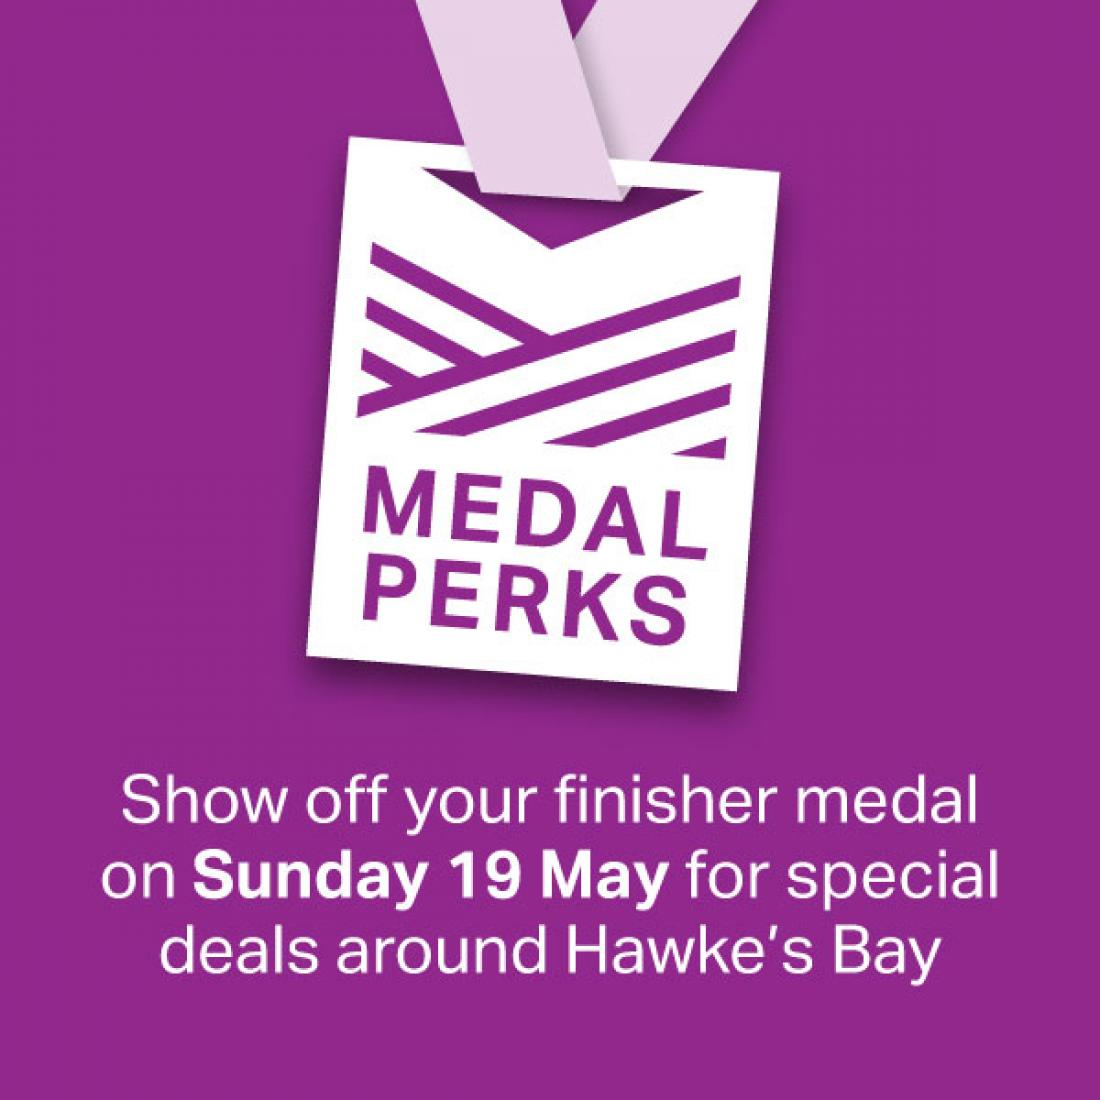 Medal Perks return for 2019